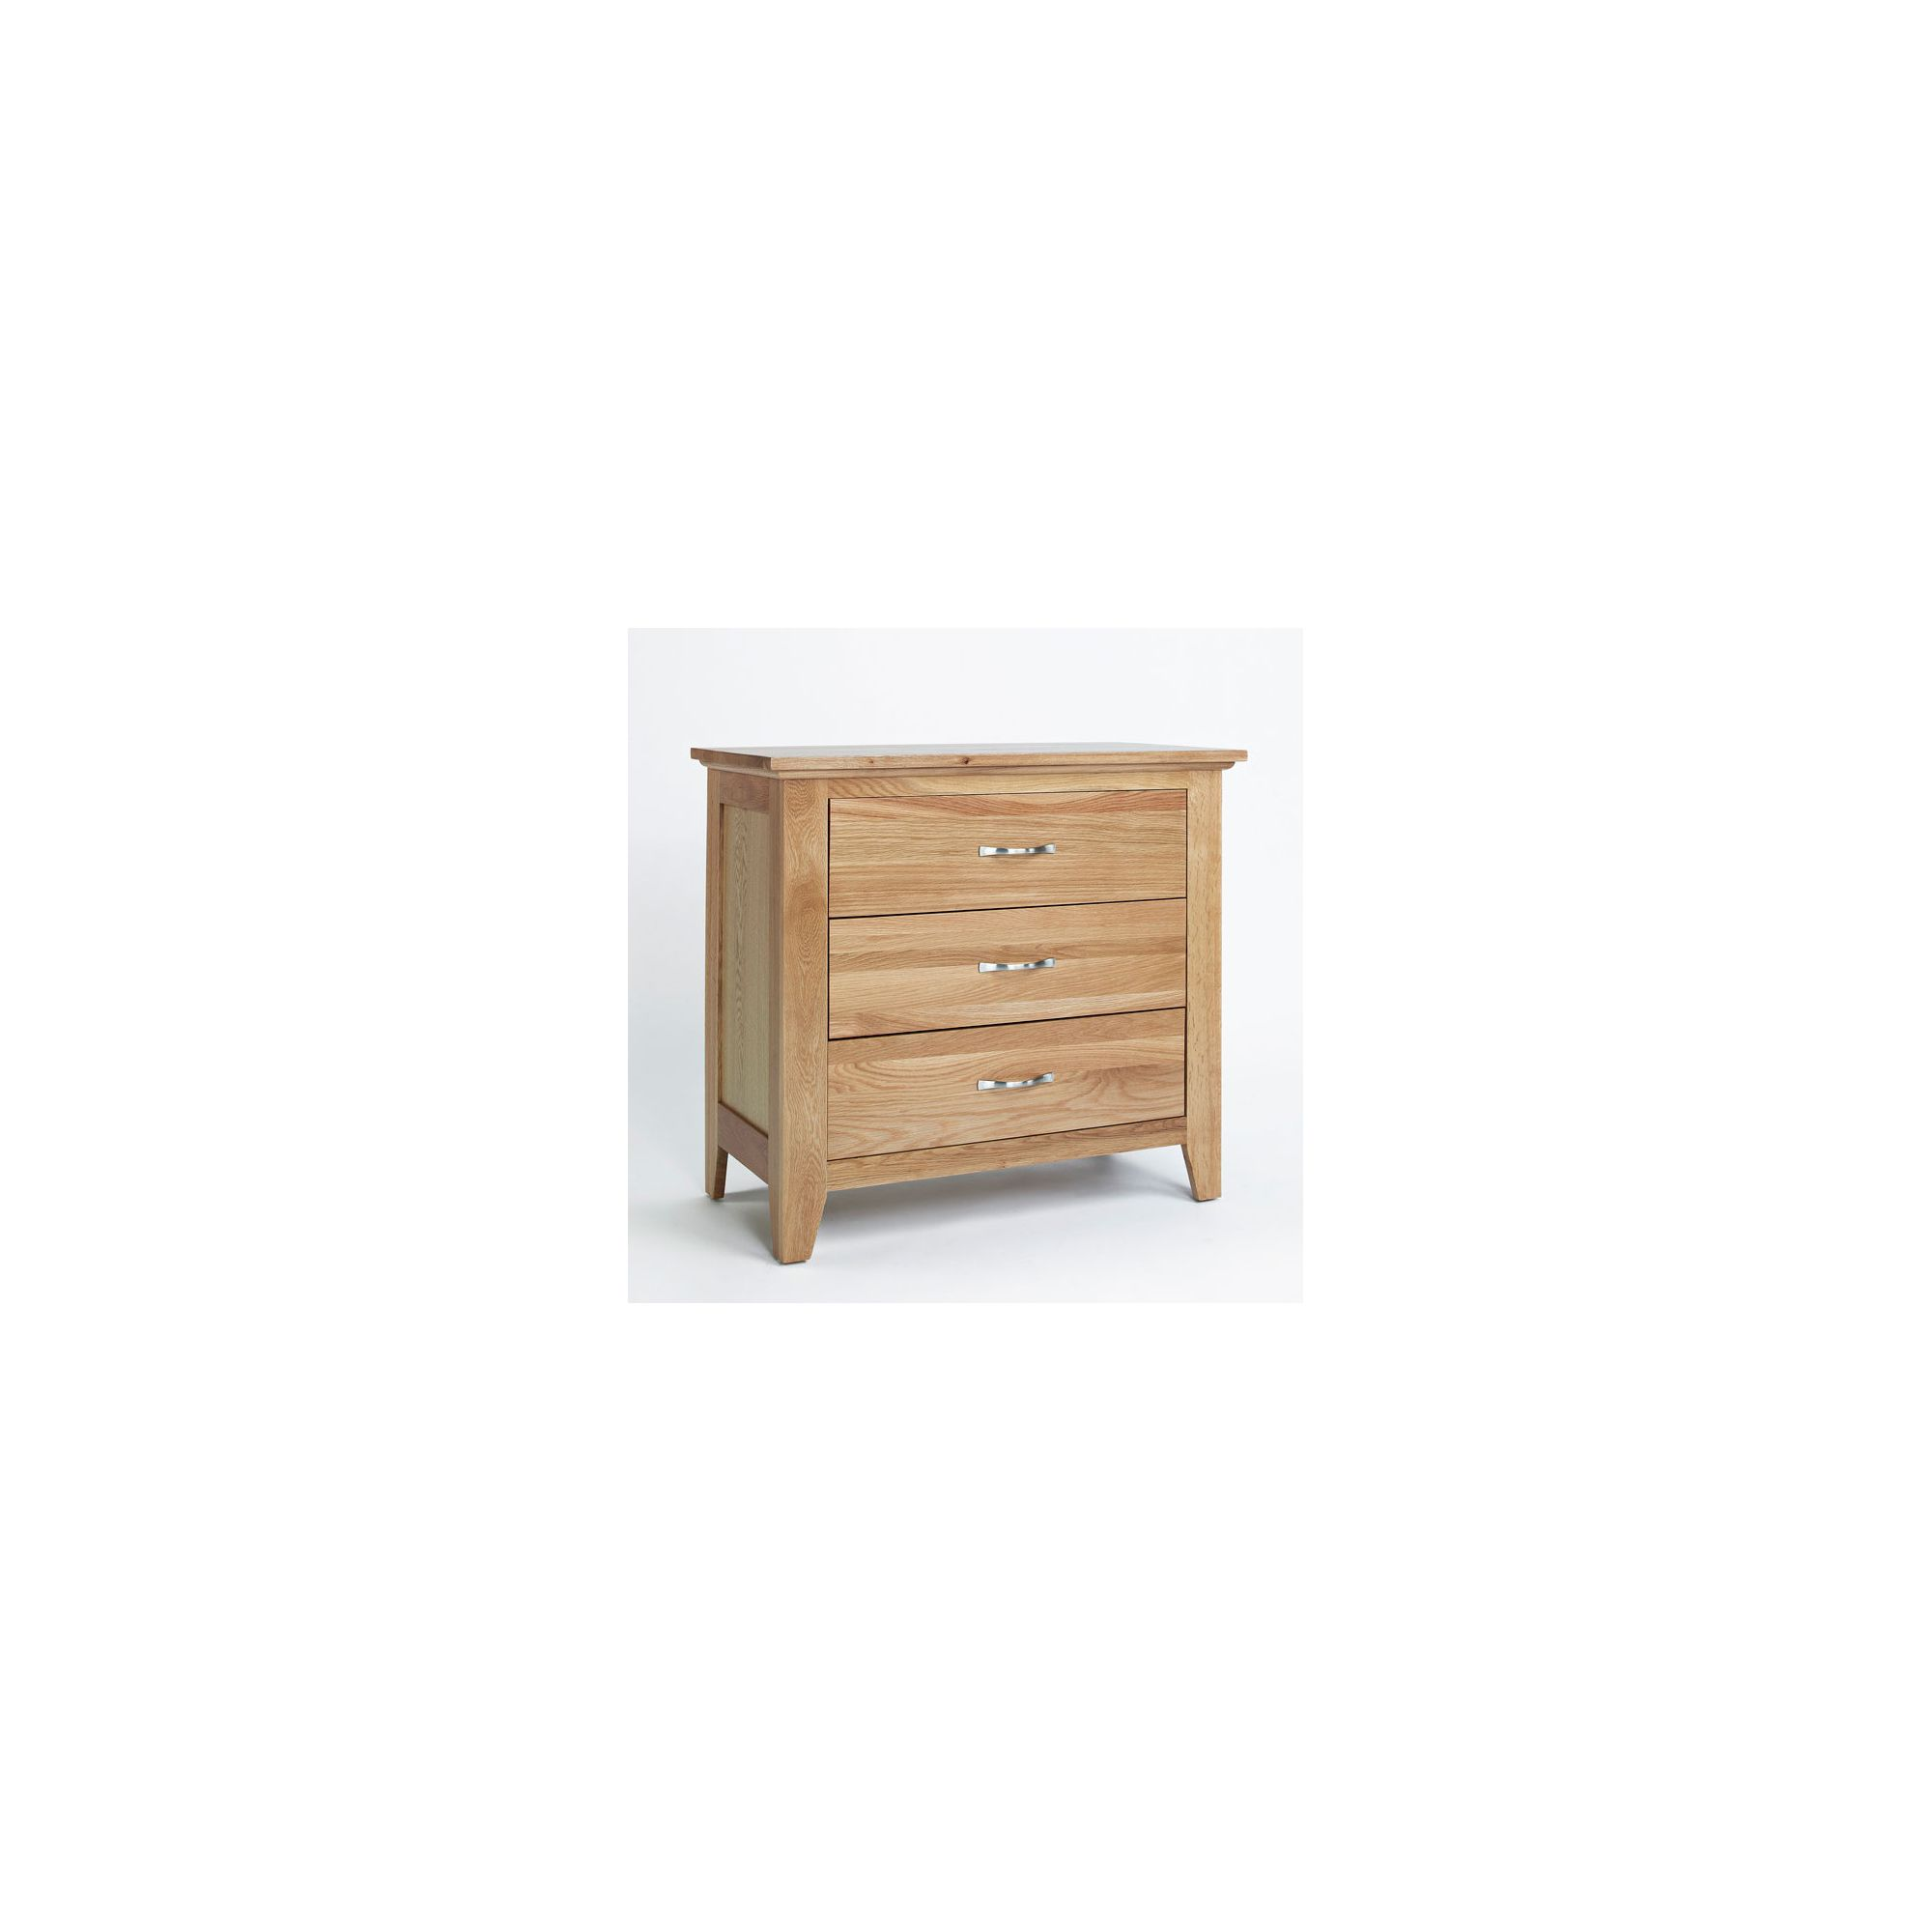 Ametis Sherwood Oak Three Drawer Chest at Tesco Direct